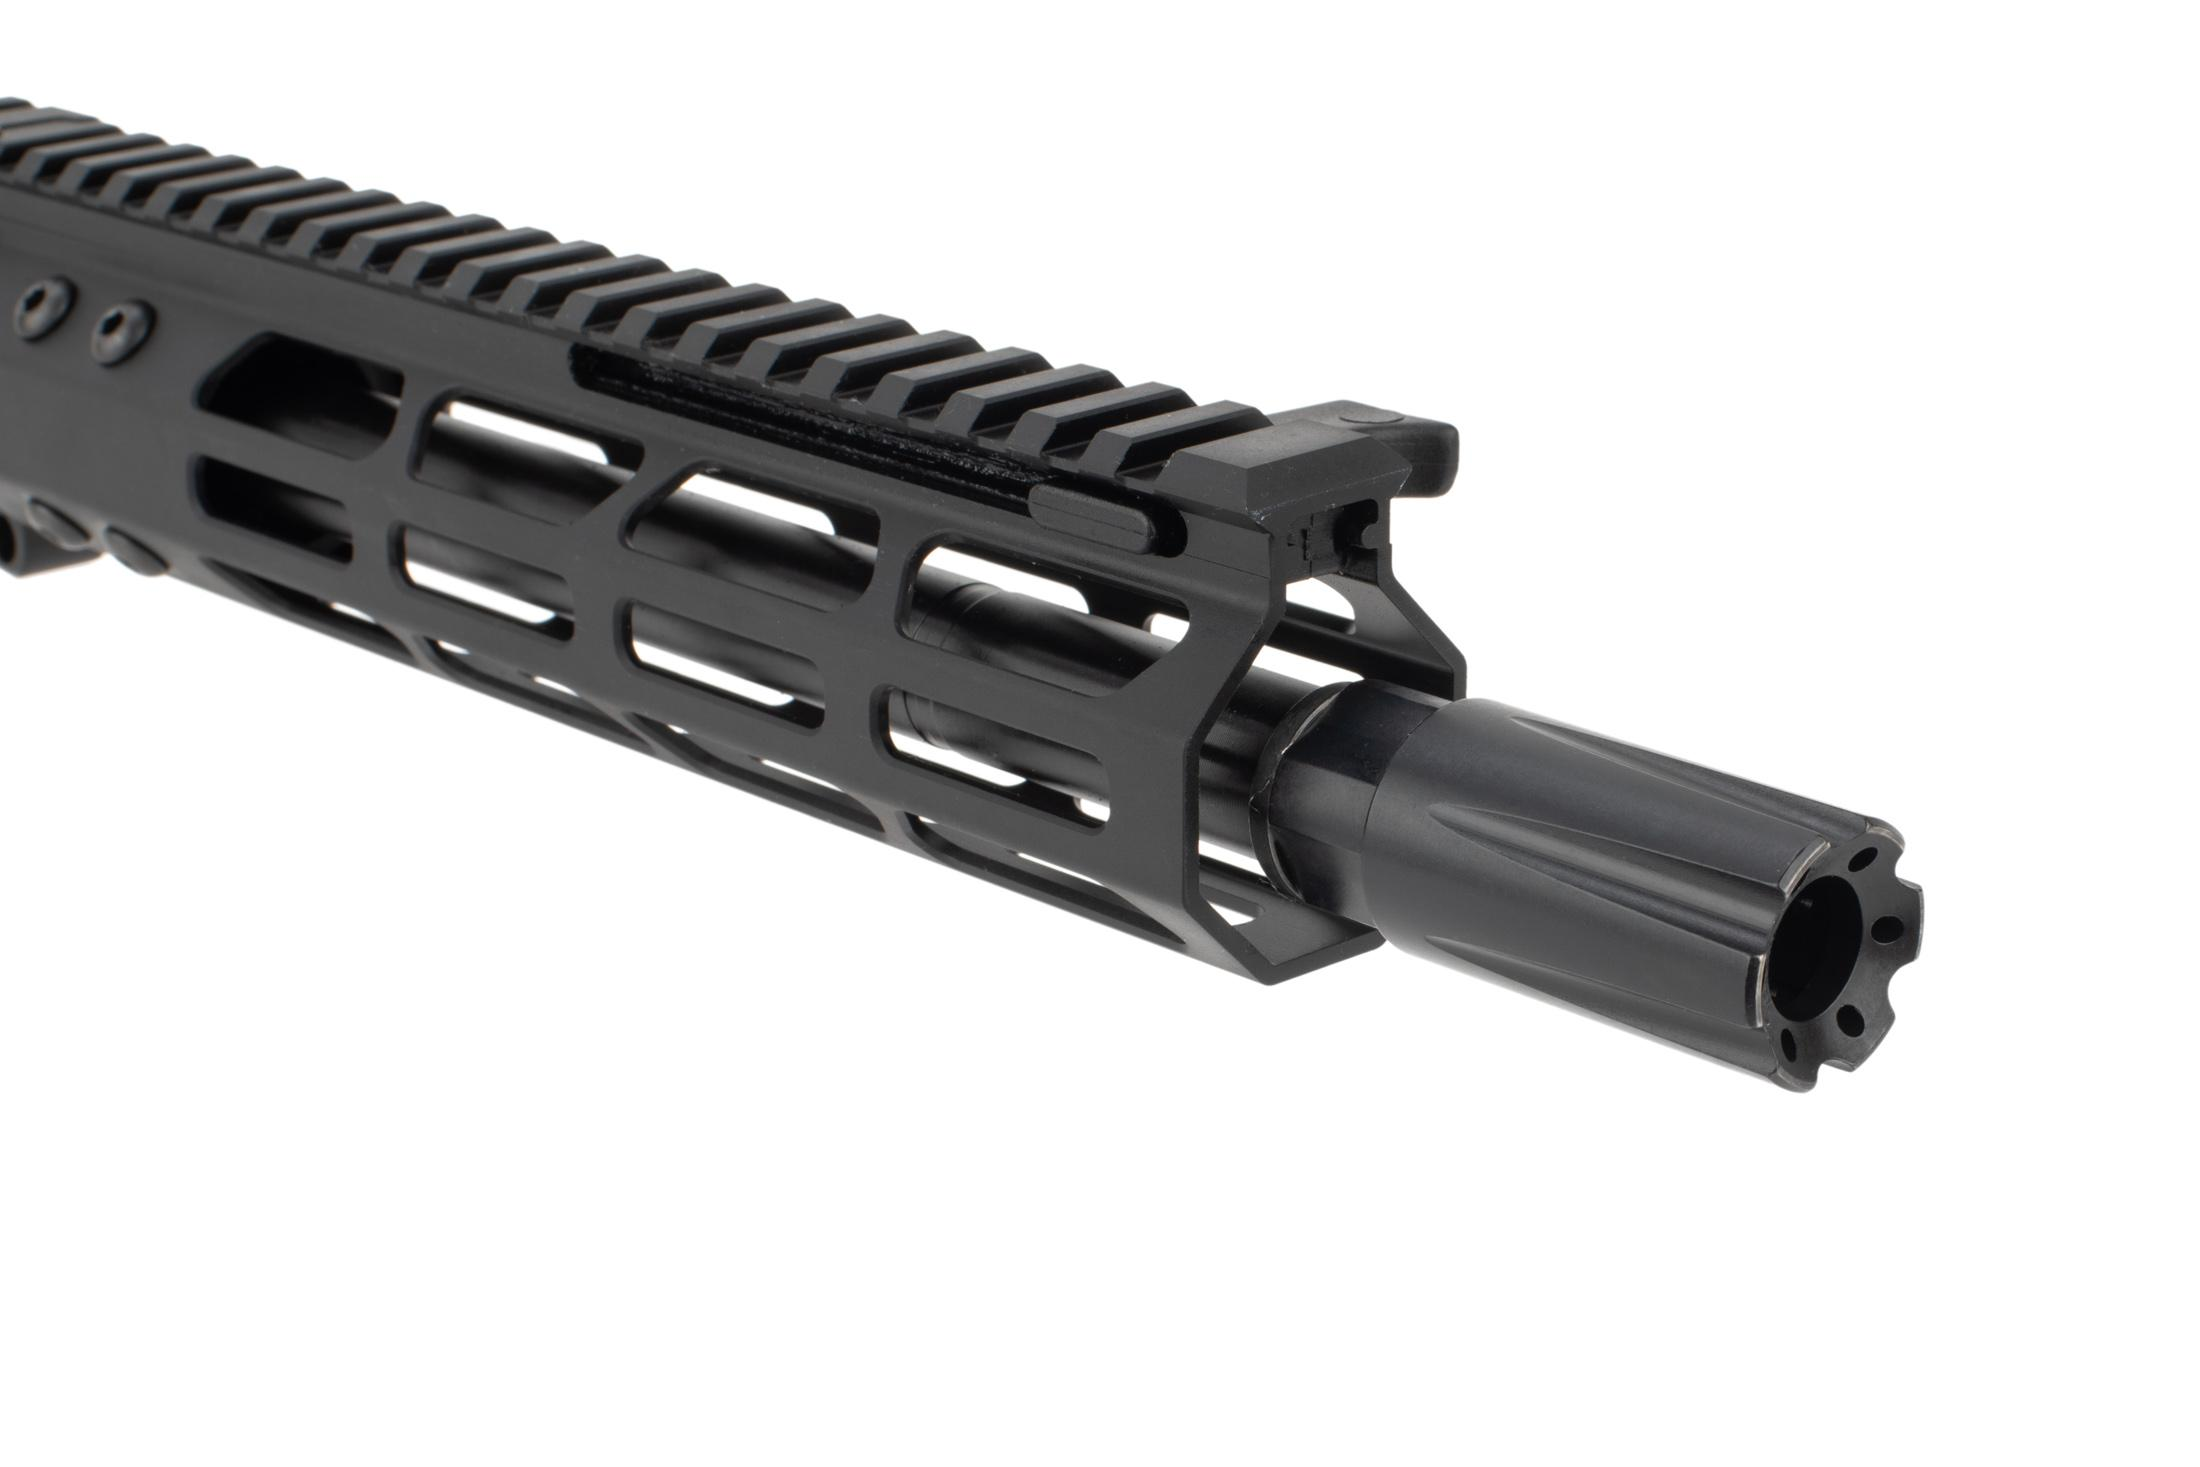 FM Products .45 ACP complete upper feeds from Glock magazines and has an effective blast diffuser